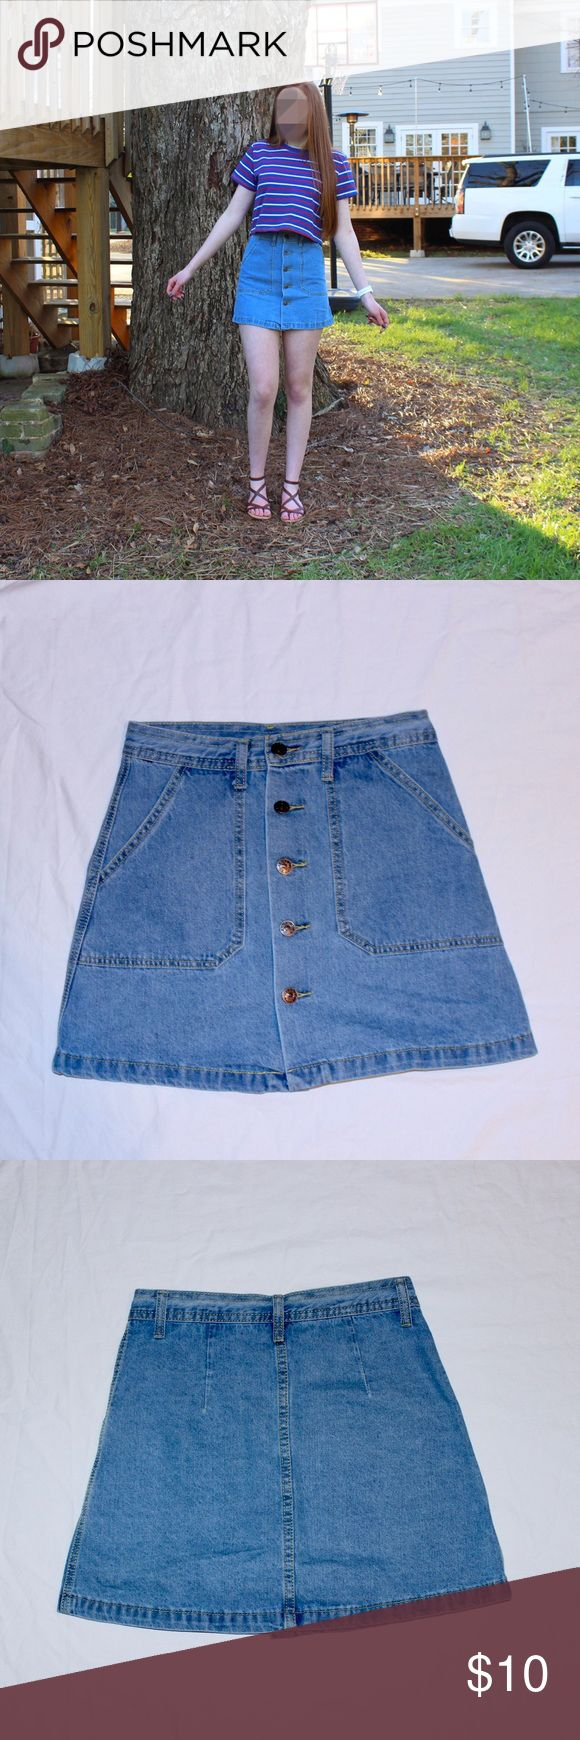 "NEW High Waisted Button Mini Skirt SALE Blue Jean High-Waisted Button Mini Skirt, New, Summer, Size Small  Model: height: 5'7"" weight:125 lbs  DISCOUNT SHIPPING ON BUNDLES :) LESS THAN 24 HOUR SHIPPING ALWAYS :) Skirts Mini"